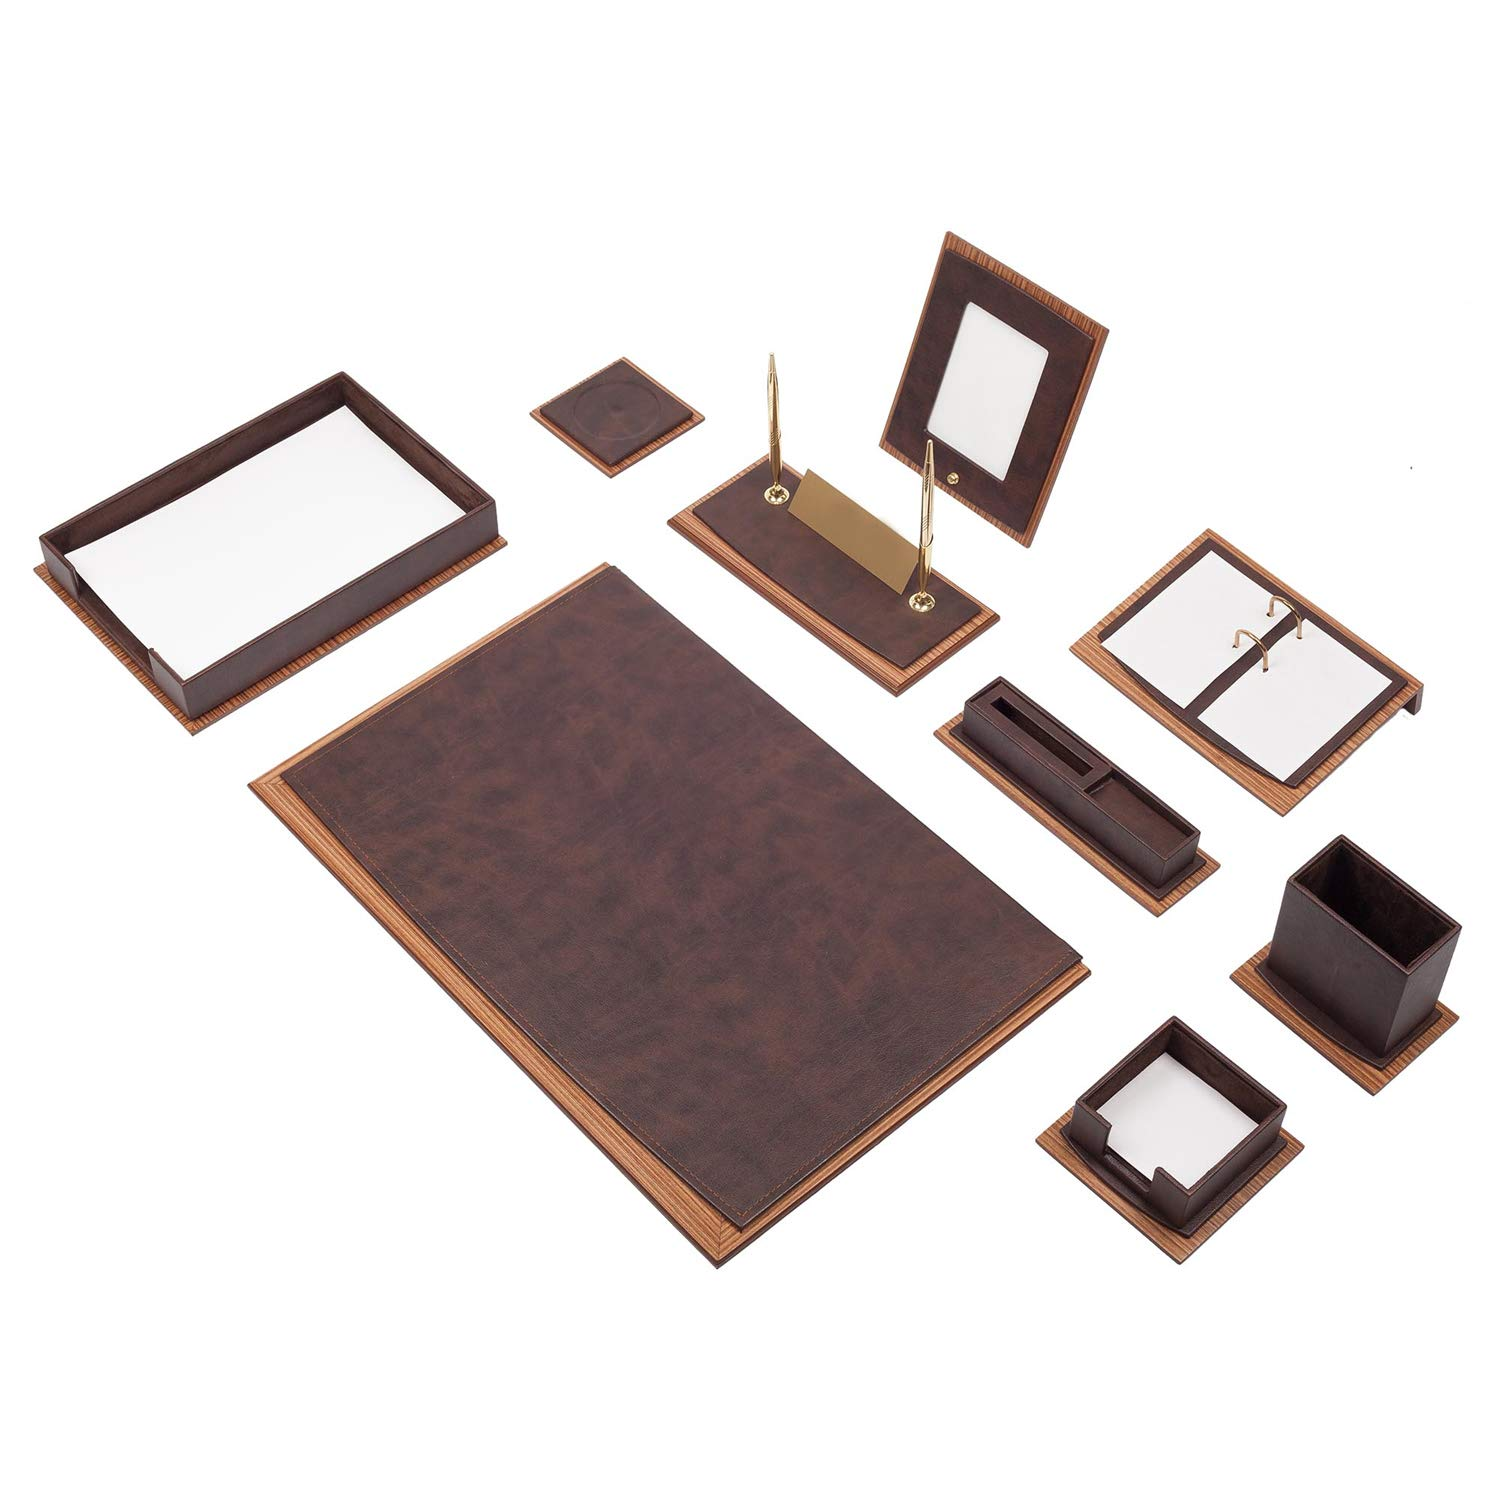 Color:Black Luxurious Star 11 Piece Office Desk blotter Set Desk pad with Document Holder Made of Wood-Leather in 5 Colours